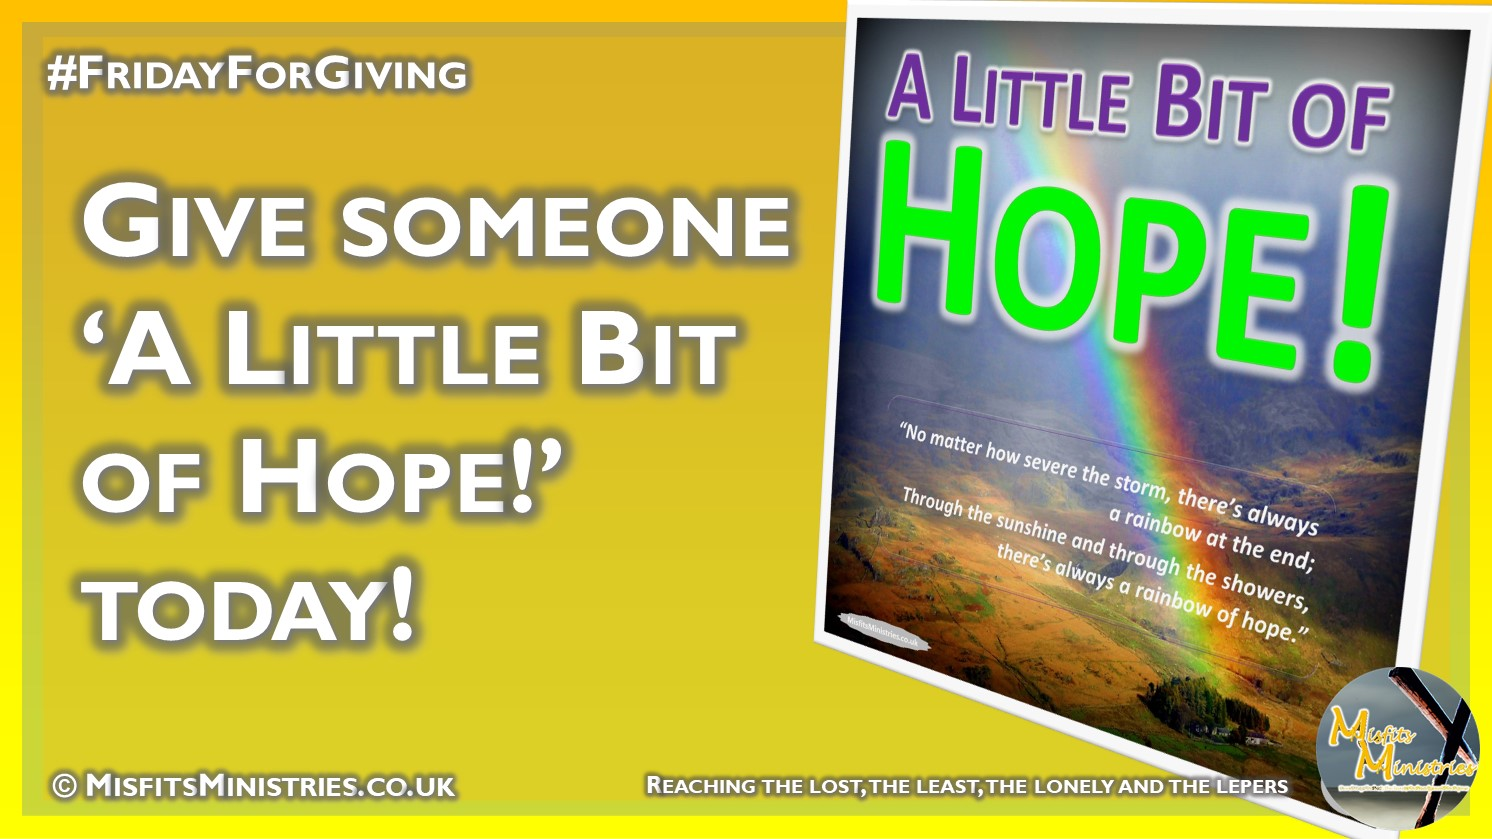 Friday For Giving - Give someone A Little Bit of Hope today